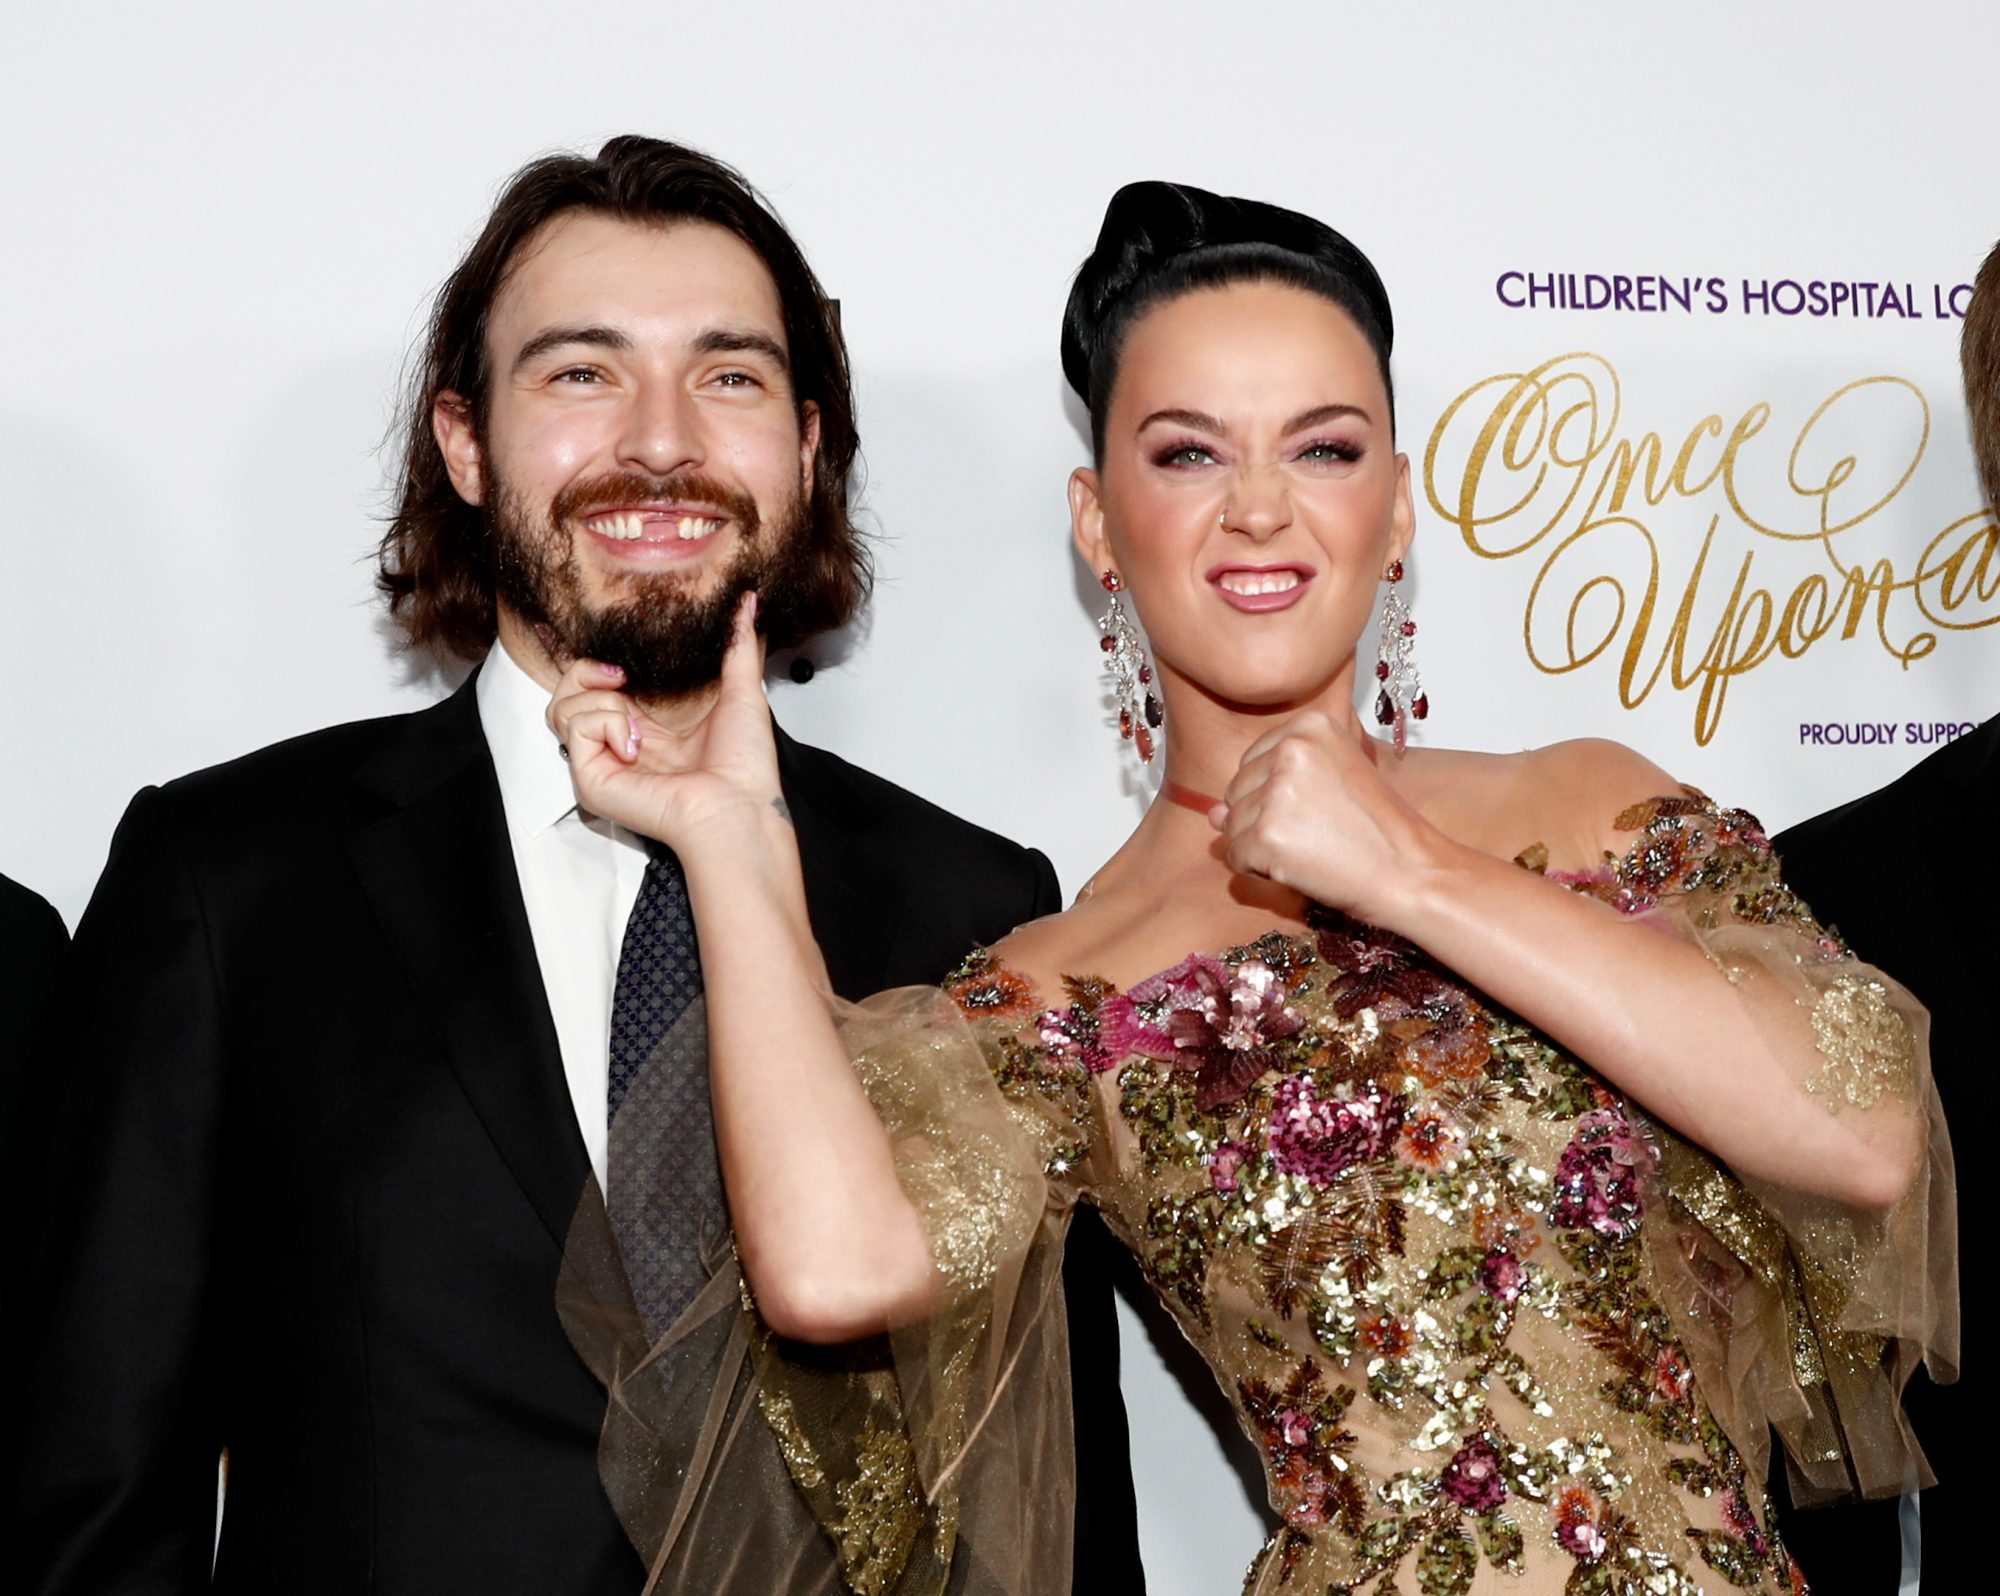 """LOS ANGELES, CA - OCTOBER 15:  Hockey player Drew Doughty (L) and singer Katy Perry attend 2016 Children's Hospital Los Angeles """"Once Upon a Time"""" Gala at The Event Deck at L.A. Live on October 15, 2016 in Los Angeles, California.  (Photo by Rich Polk/Getty Images for Children's Hospital Los Angeles) *** Local Caption *** Drew Doughty; Katy Perry"""